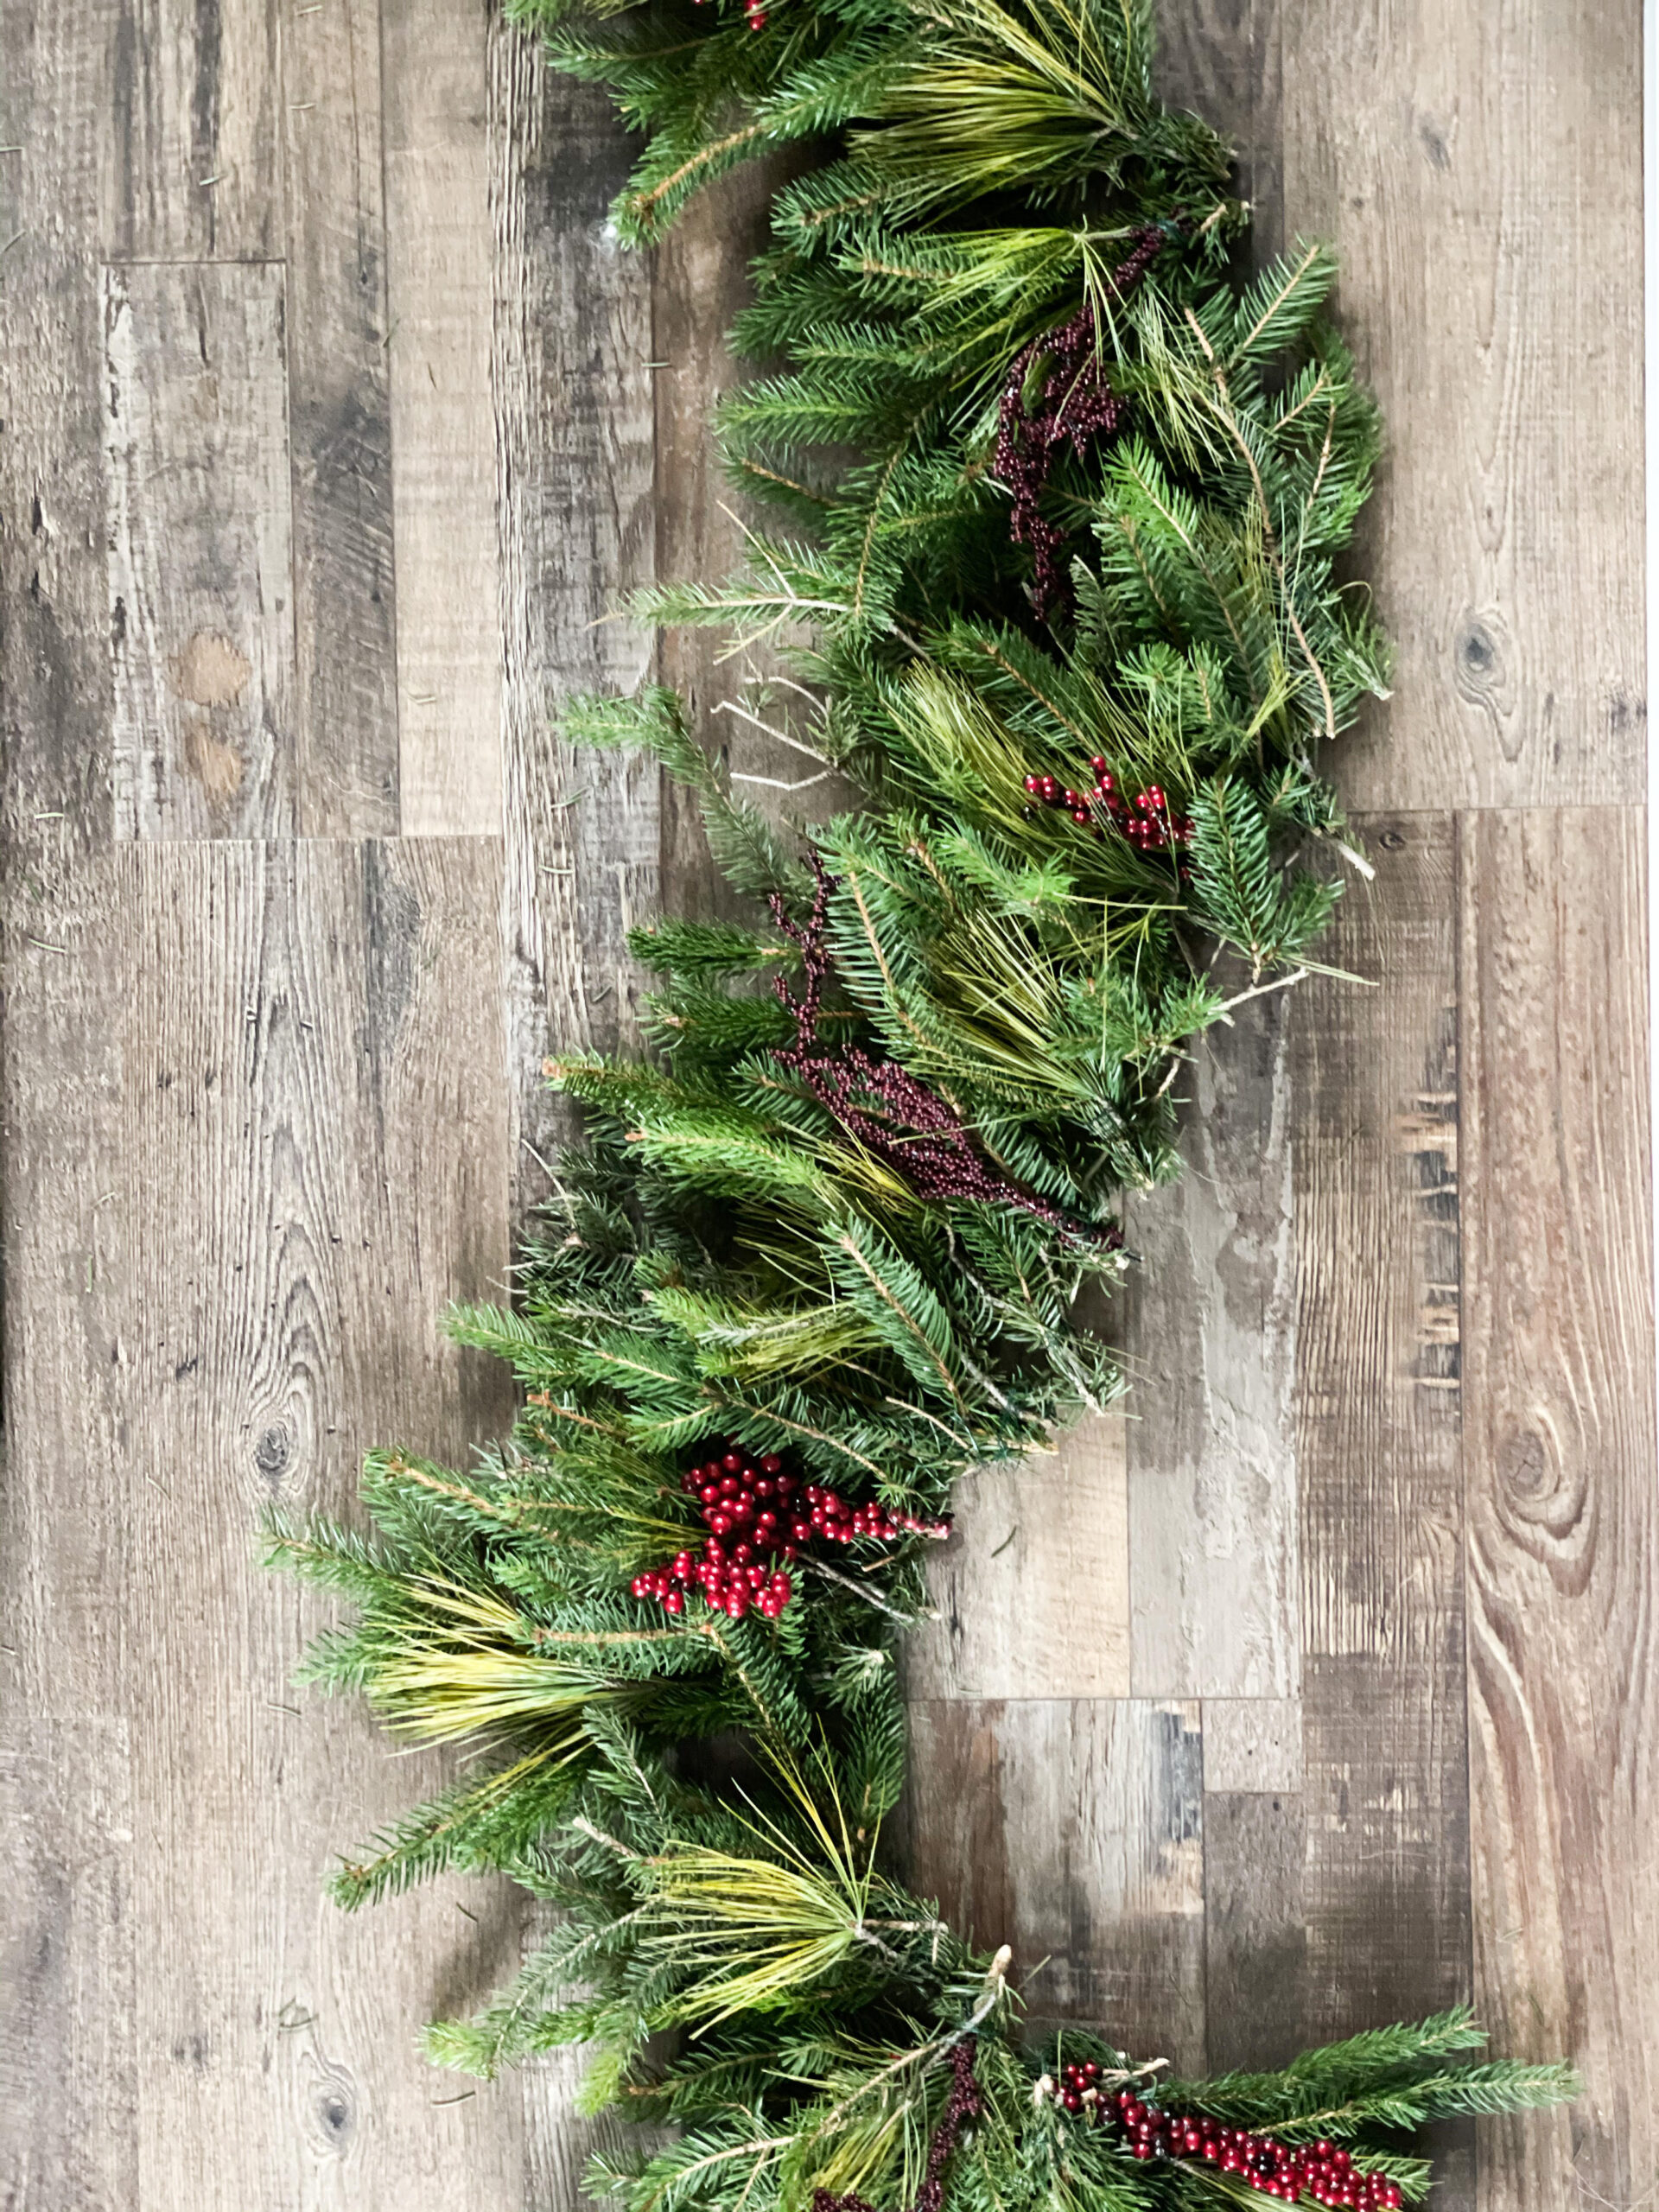 Real pine made into garland with red berries laying on the ground